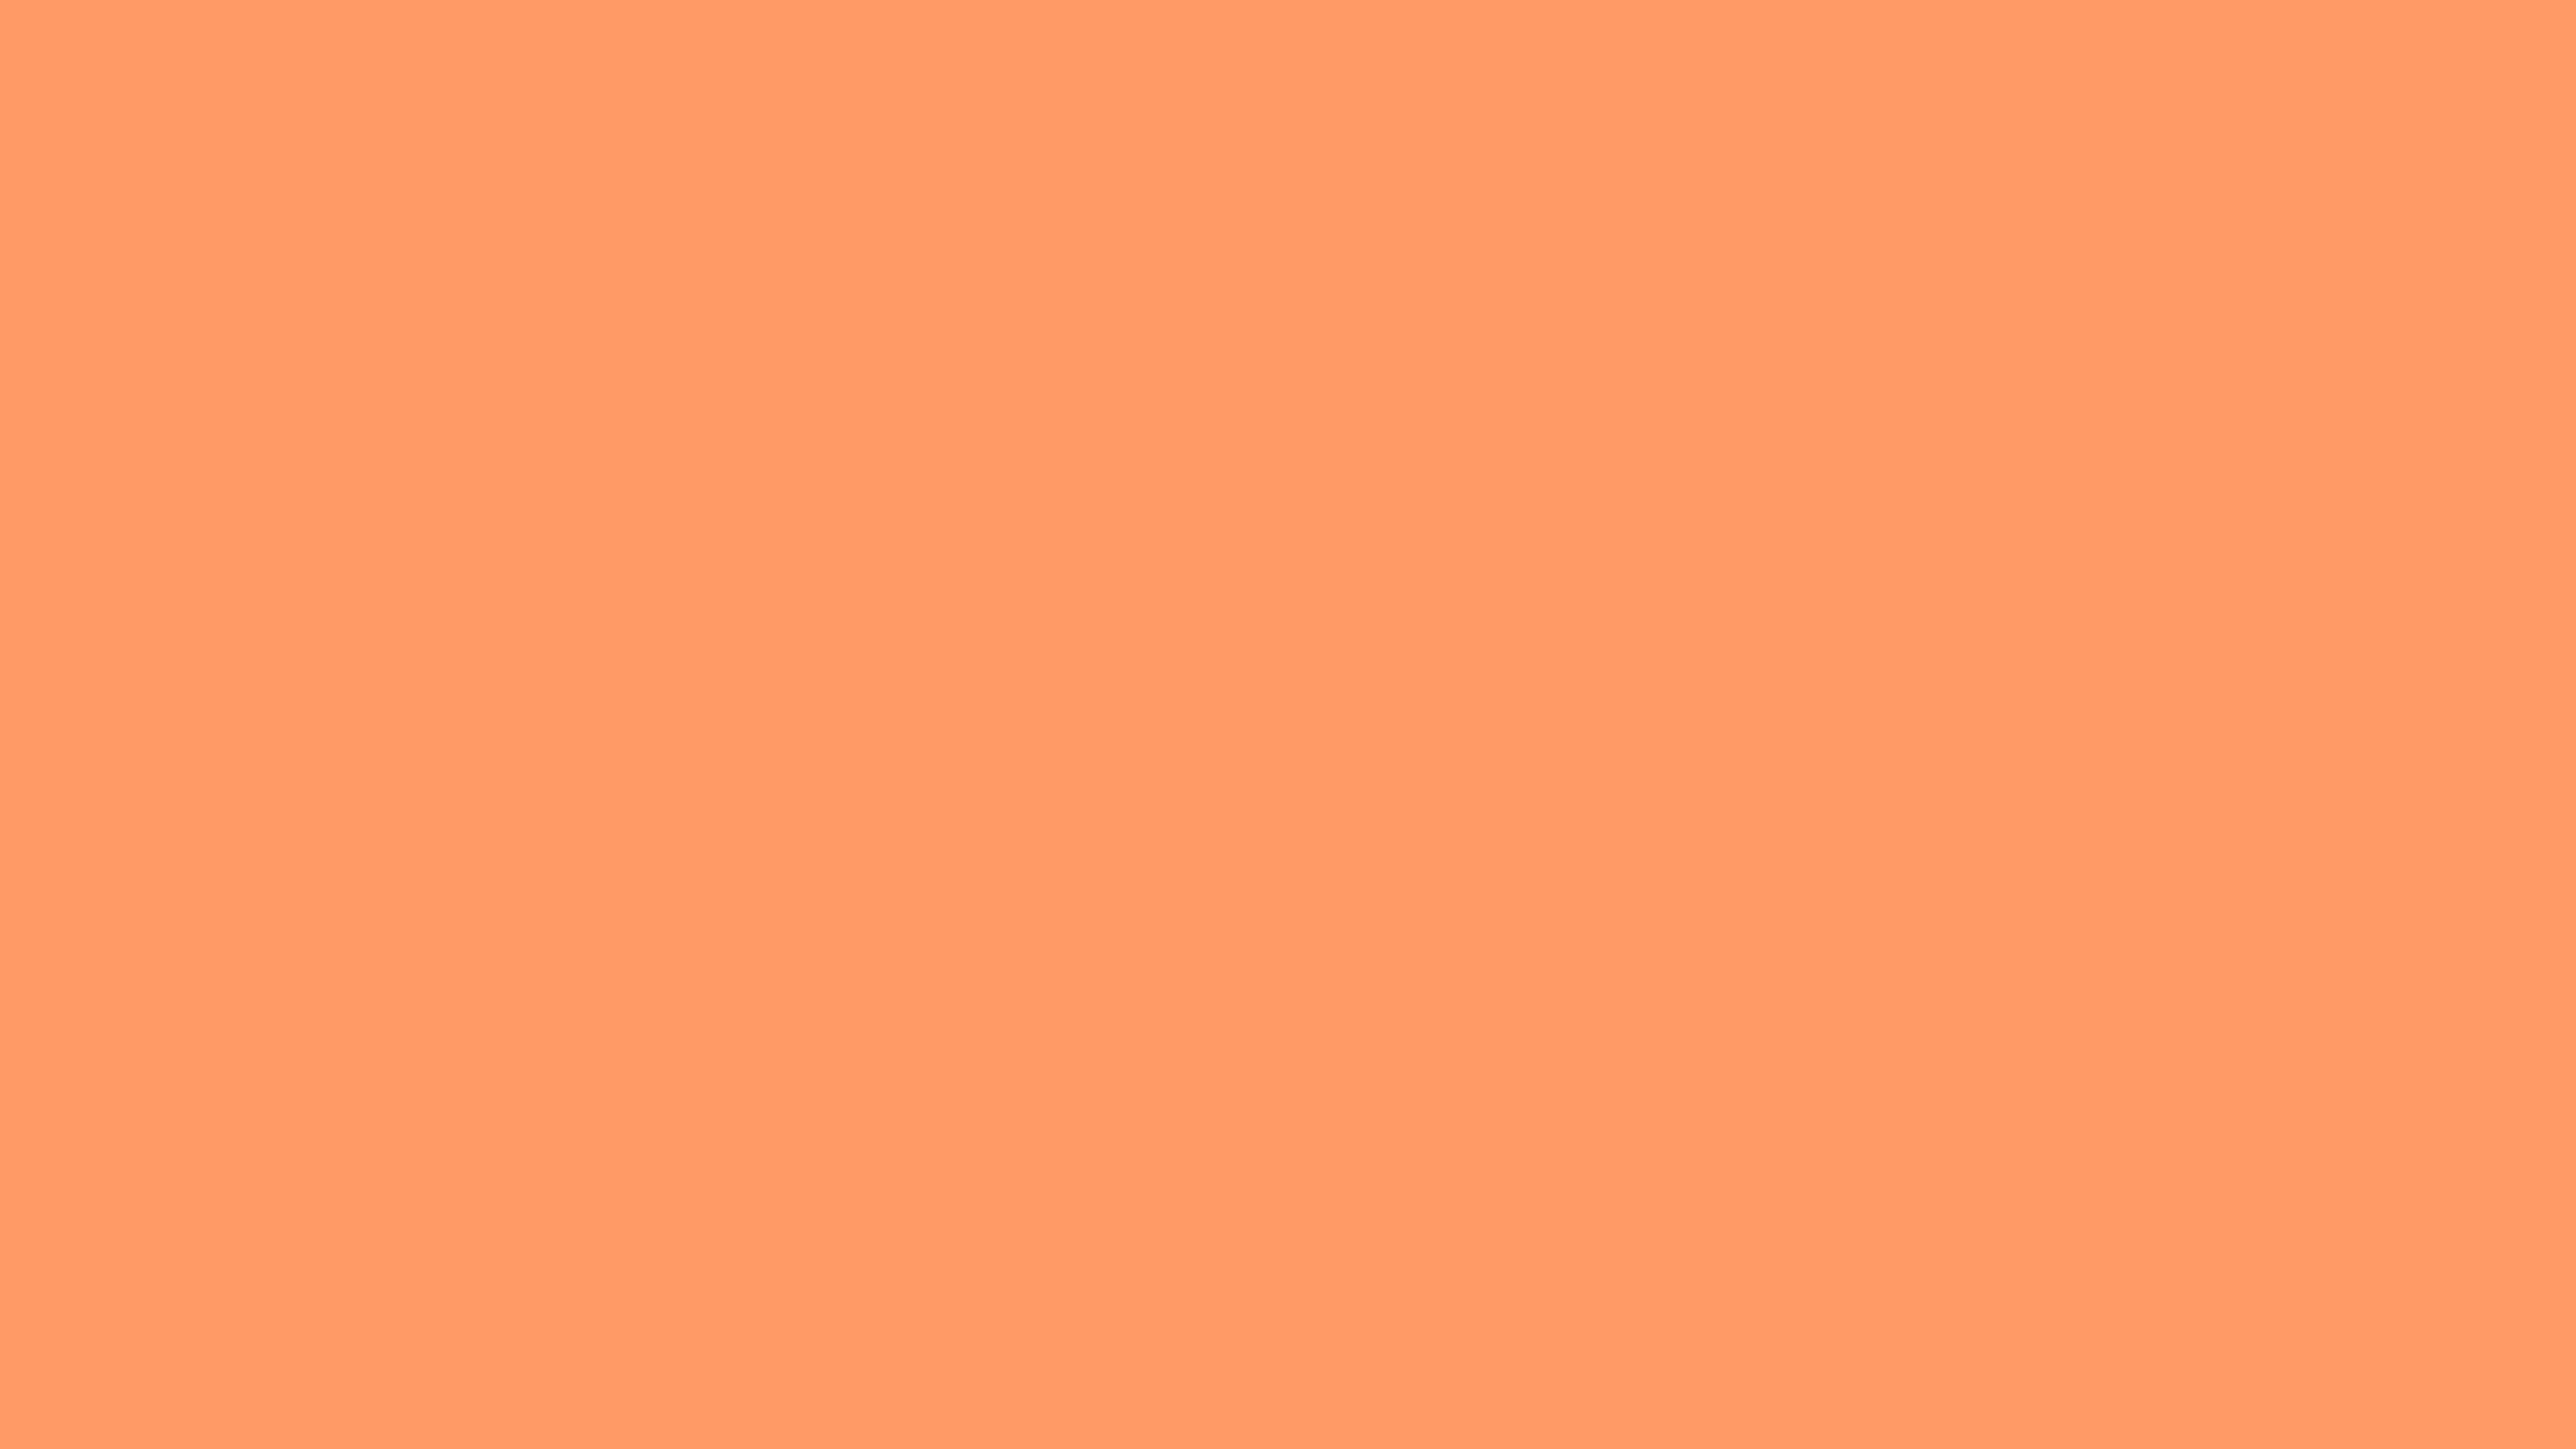 4096x2304 Atomic Tangerine Solid Color Background